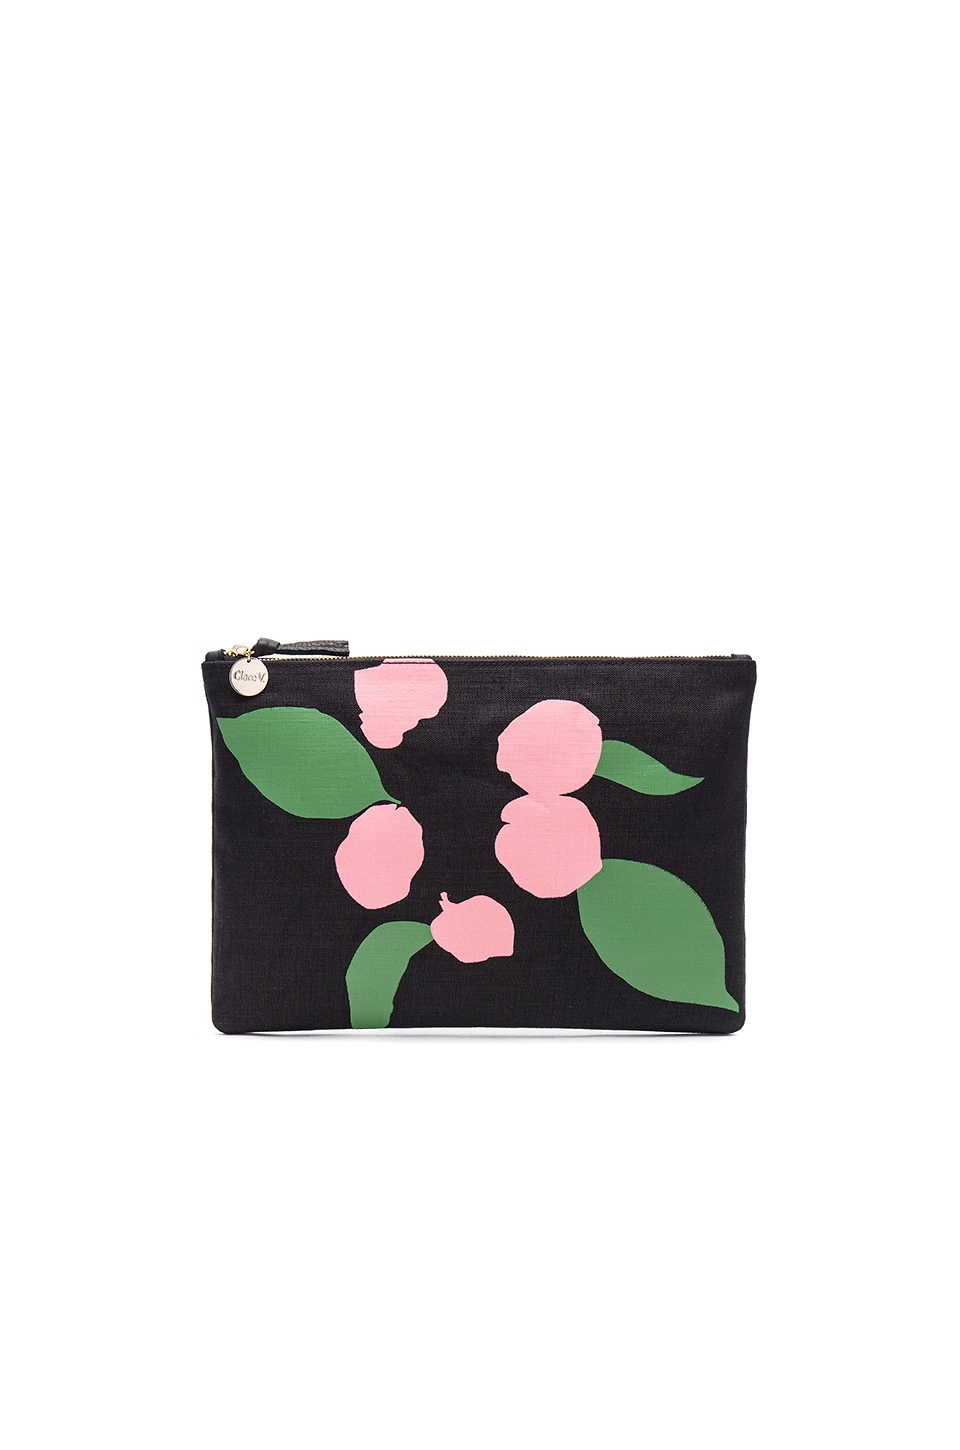 Flat Canvas Clutch by Clare V.